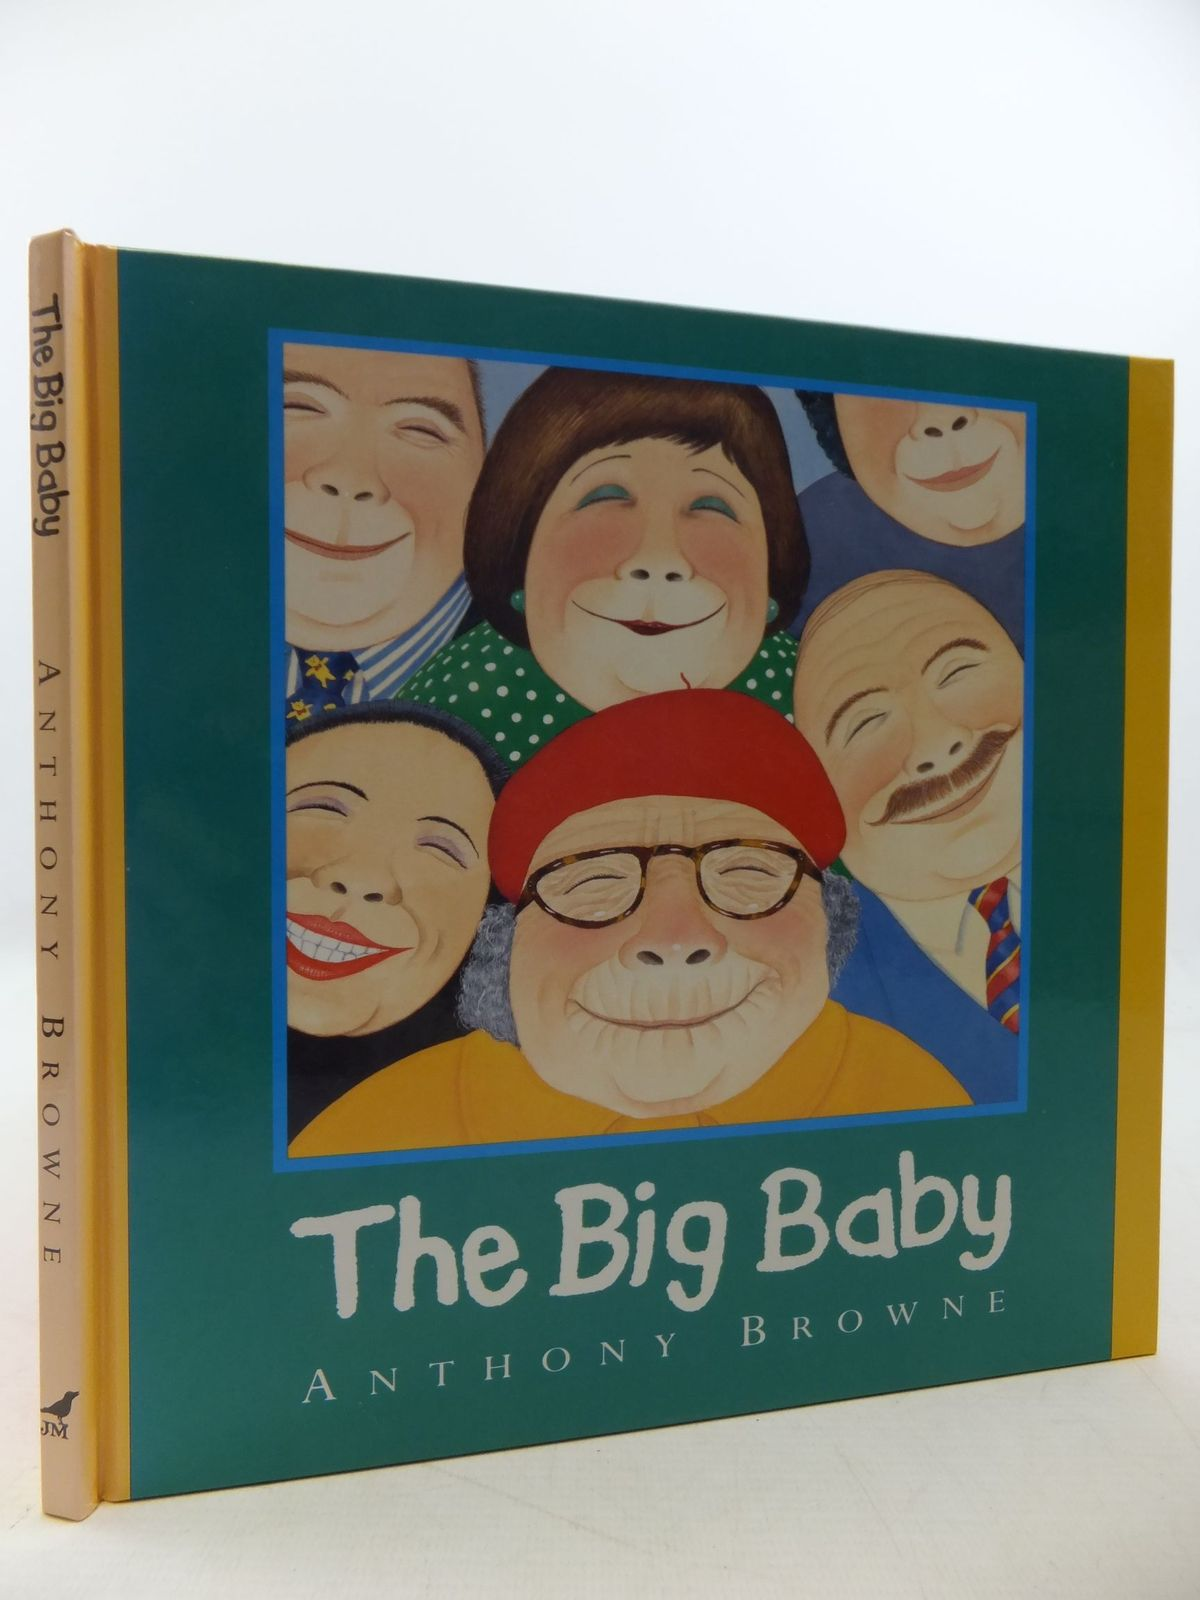 Photo of THE BIG BABY A LITTLE JOKE written by Browne, Anthony illustrated by Browne, Anthony published by Julia MacRae Books (STOCK CODE: 1710174)  for sale by Stella & Rose's Books